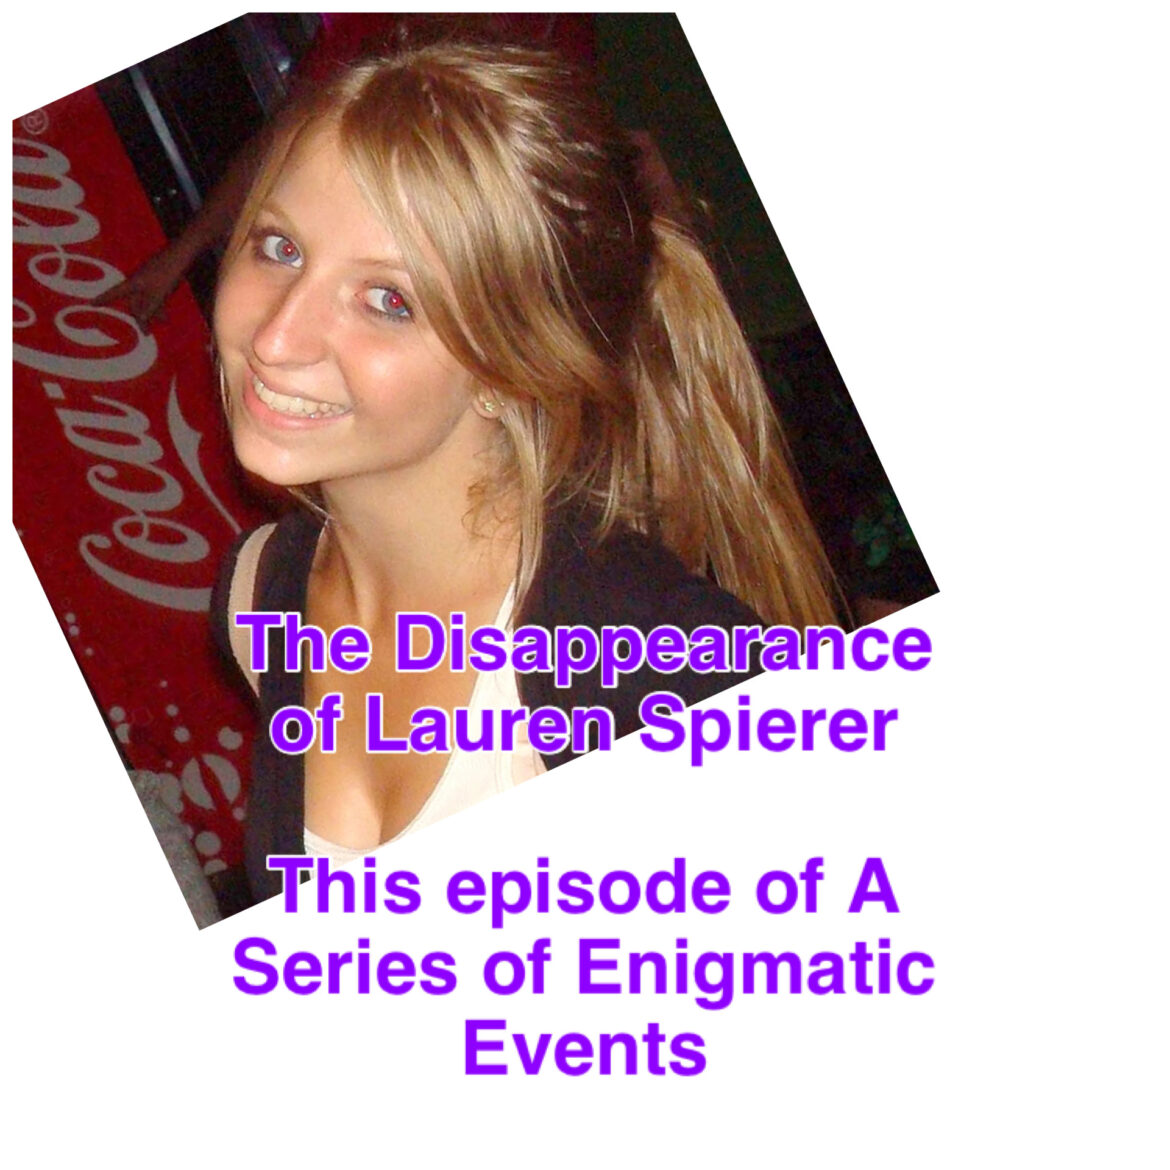 A Series of Enigmatic Events: The Lauren Spierer Disappearance